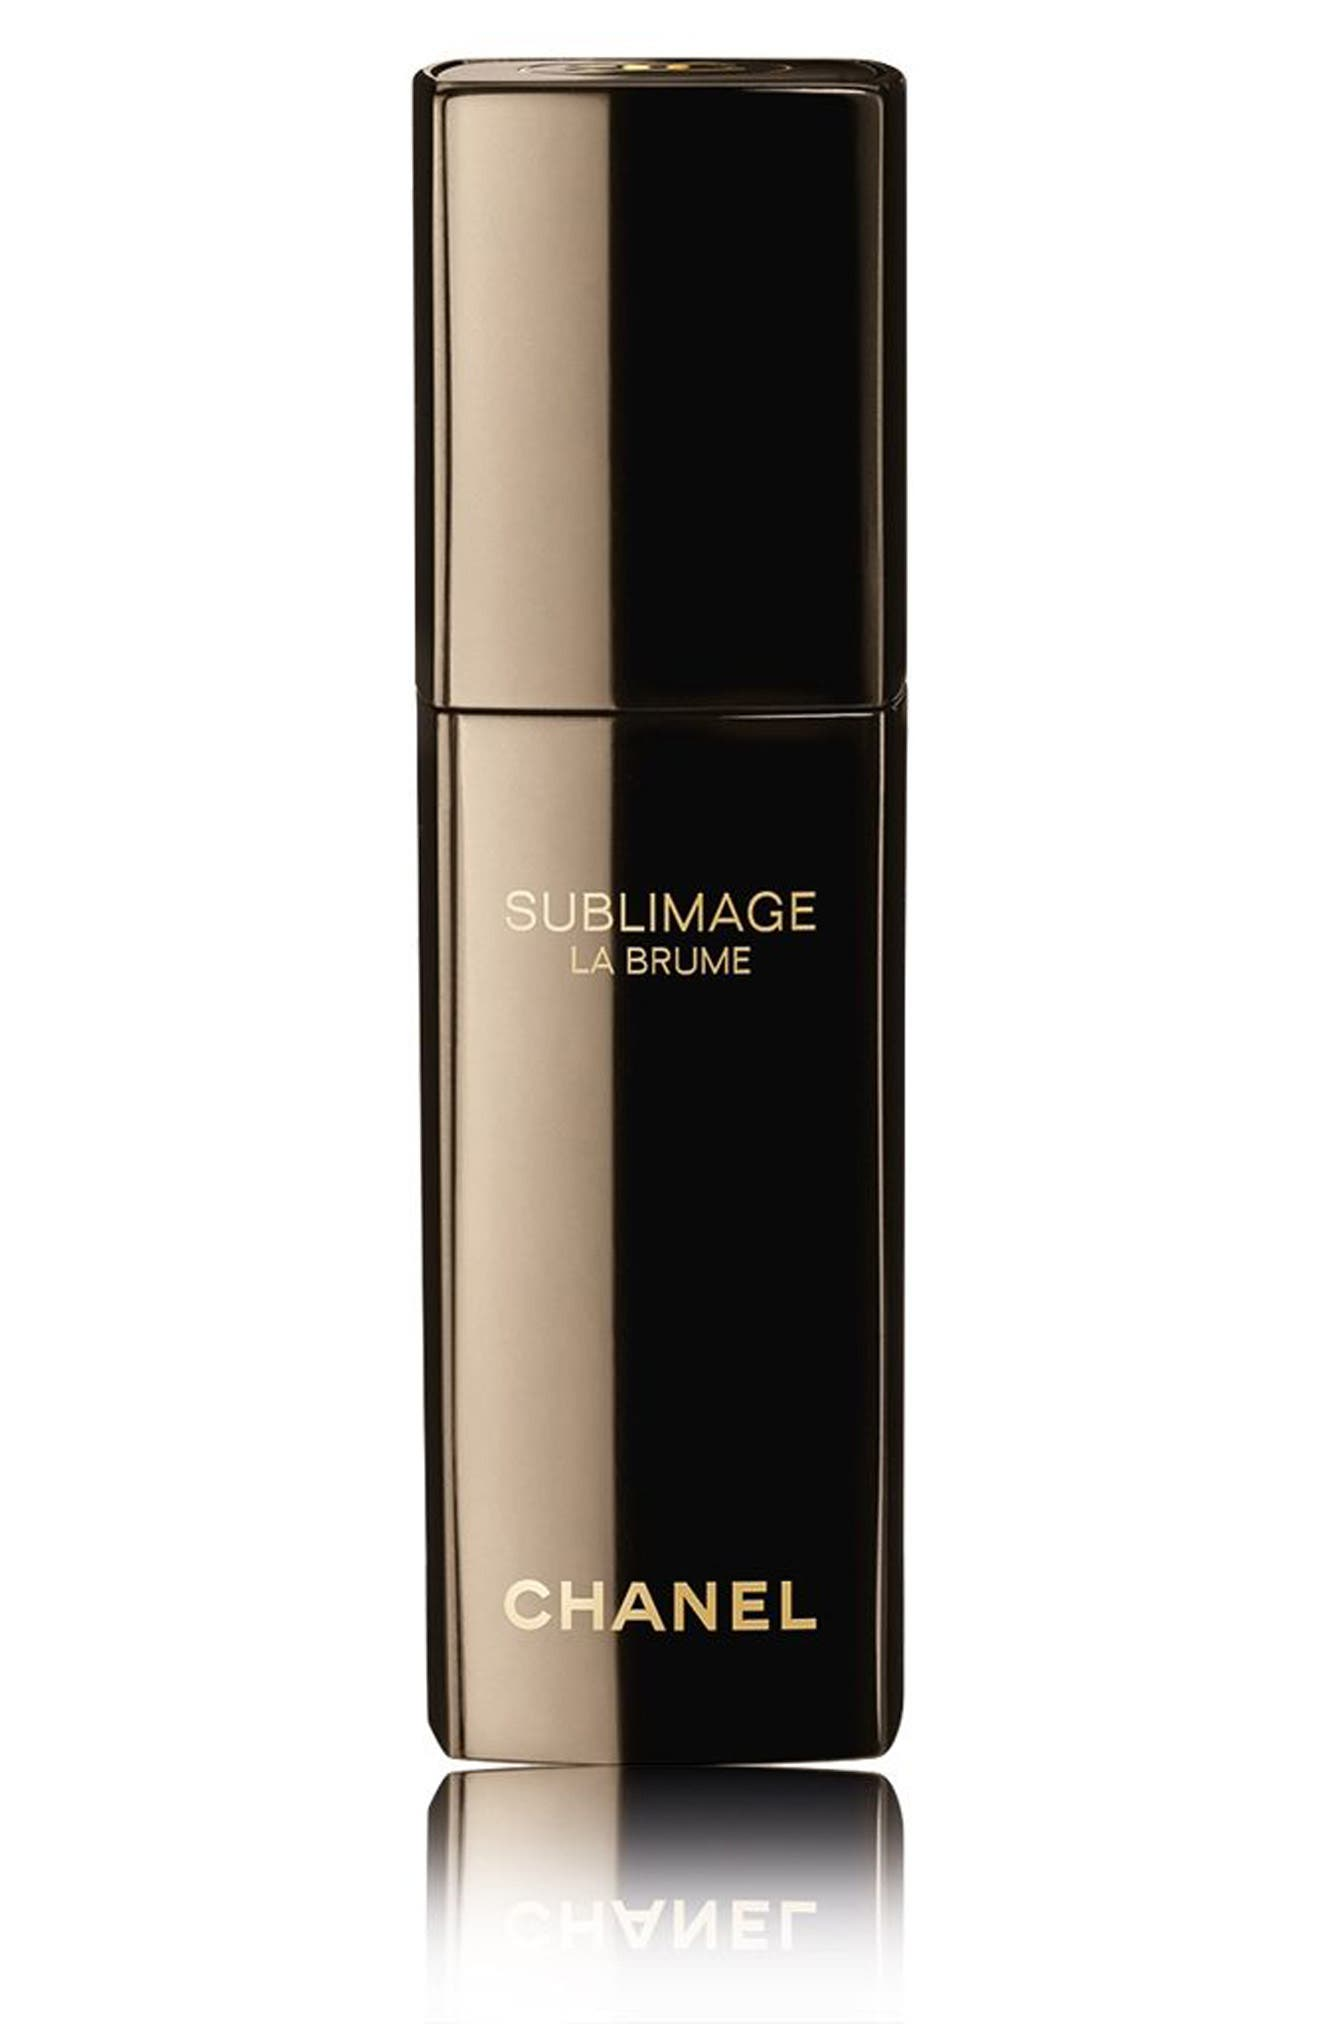 CHANEL SUBLIMAGE LA BRUME 